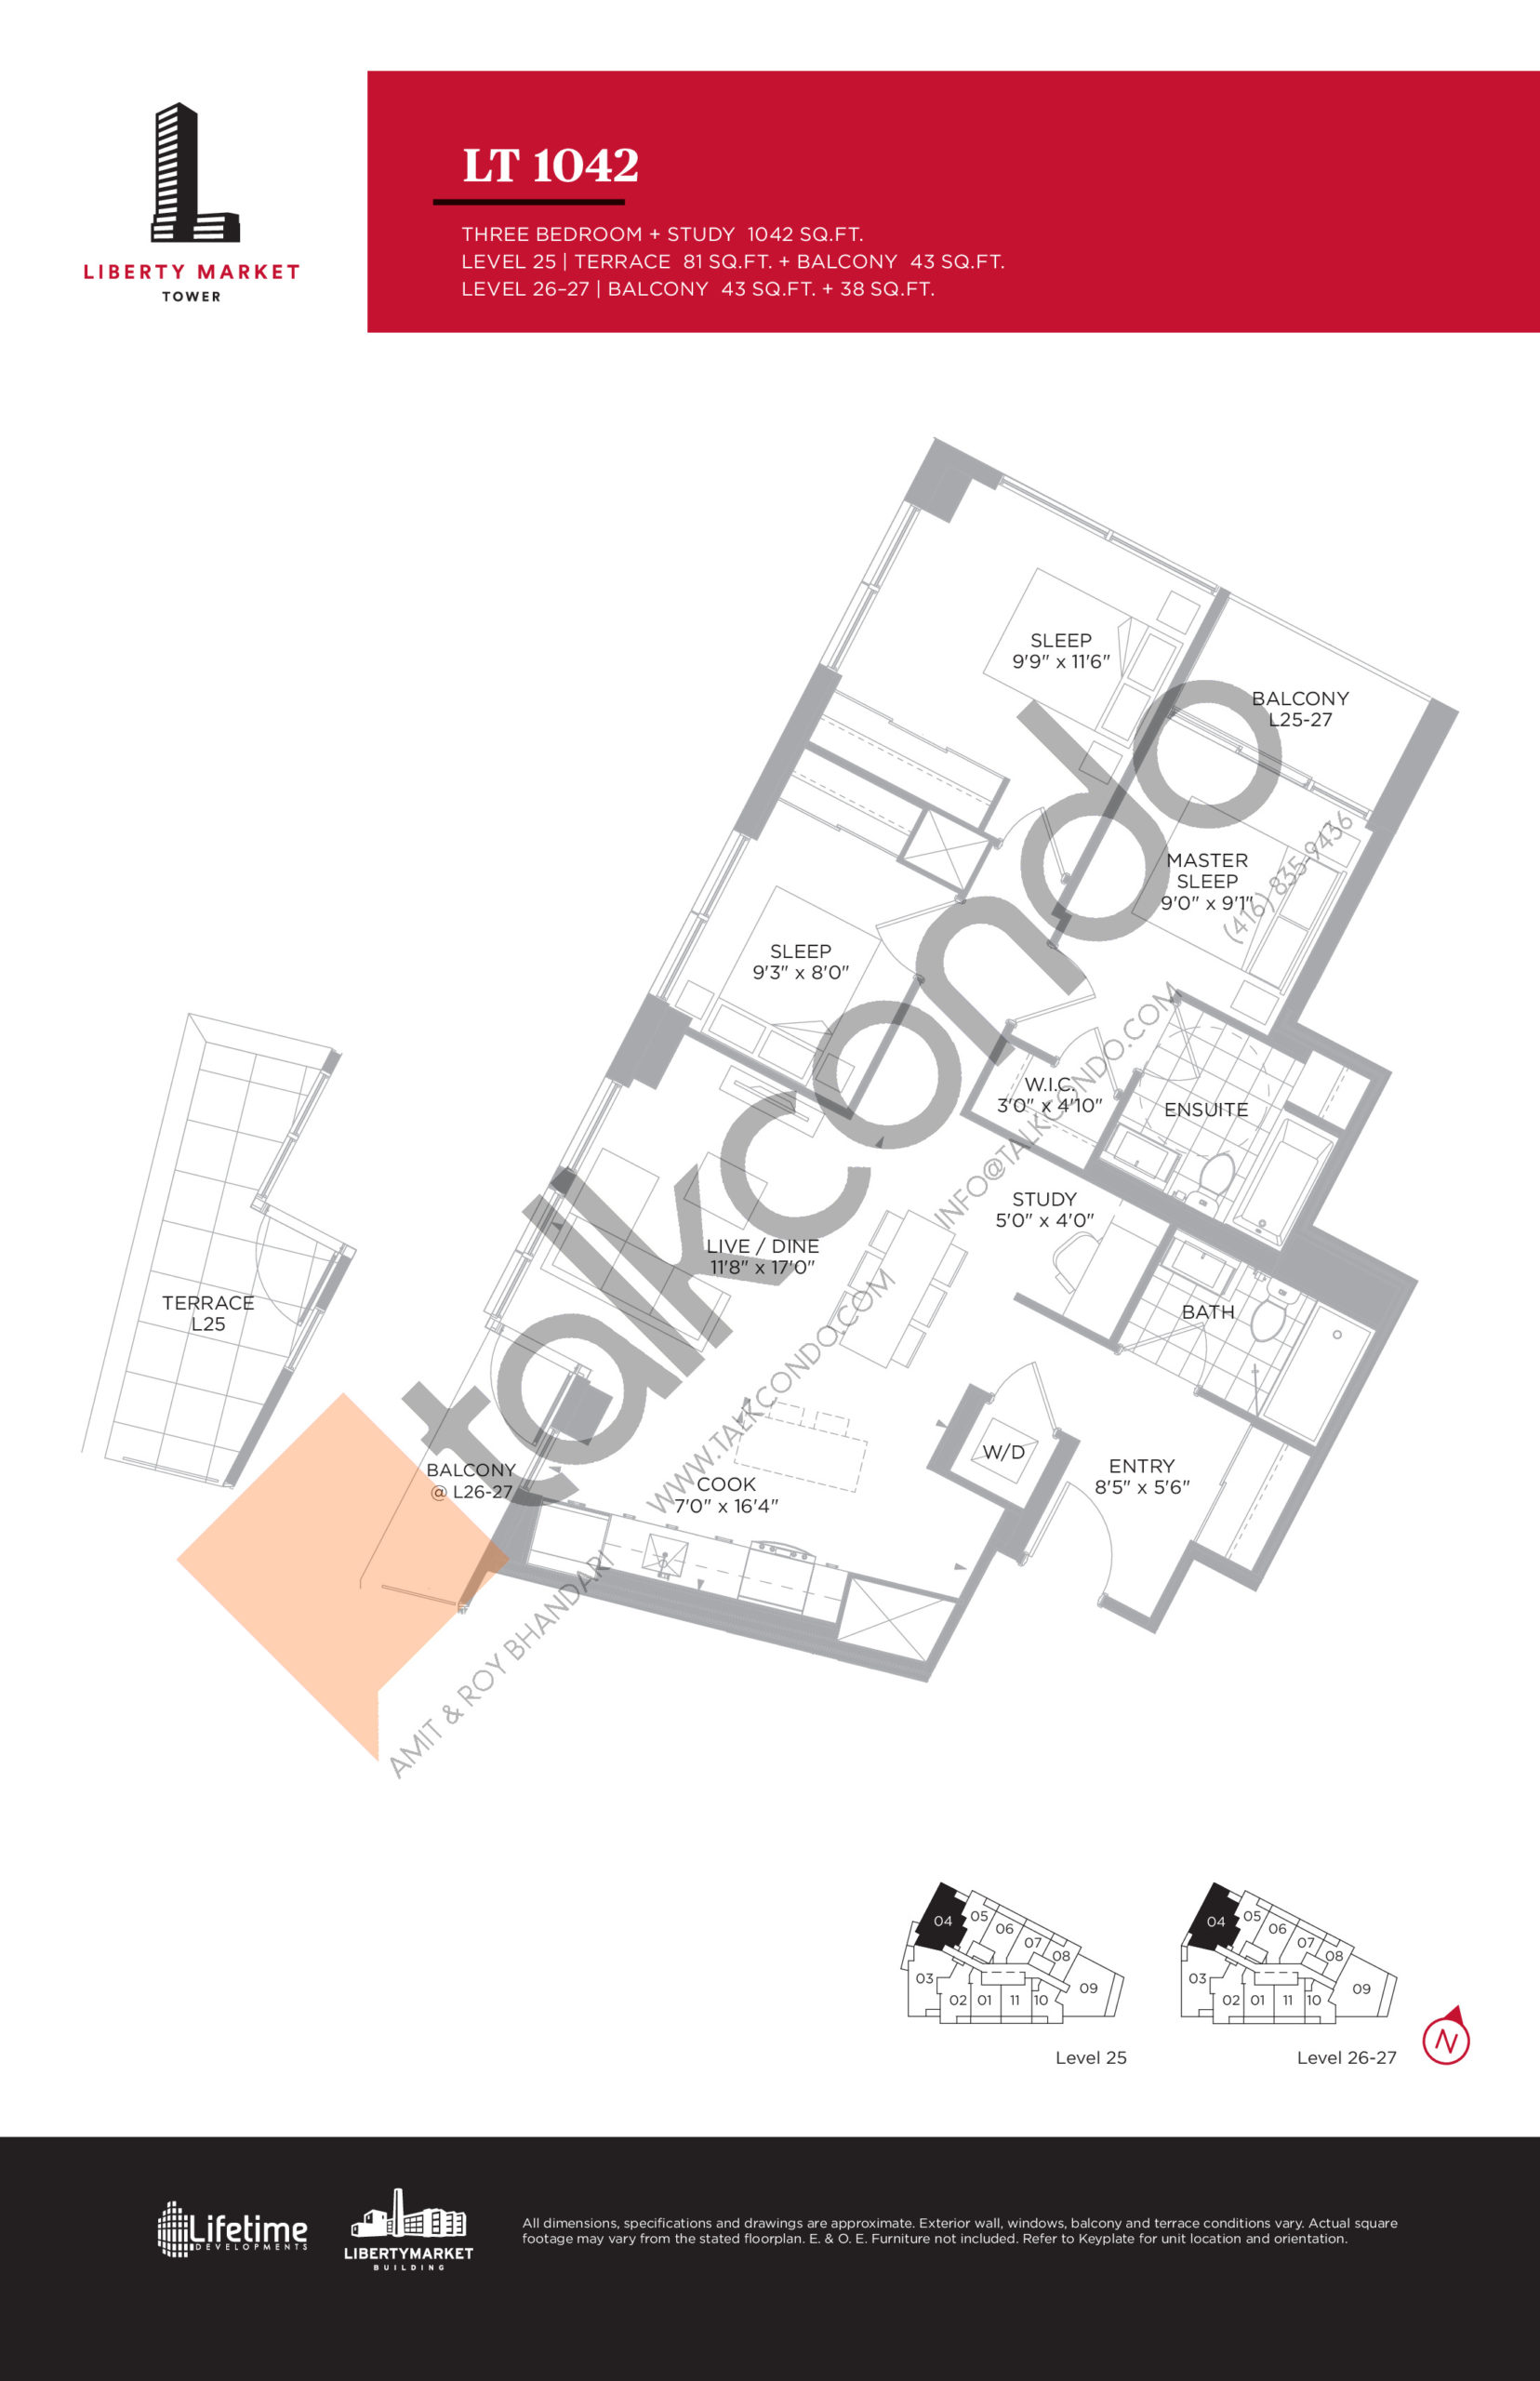 LT 1042 - Terrace Collection Floor Plan at Liberty Market Tower Condos - 1042 sq.ft